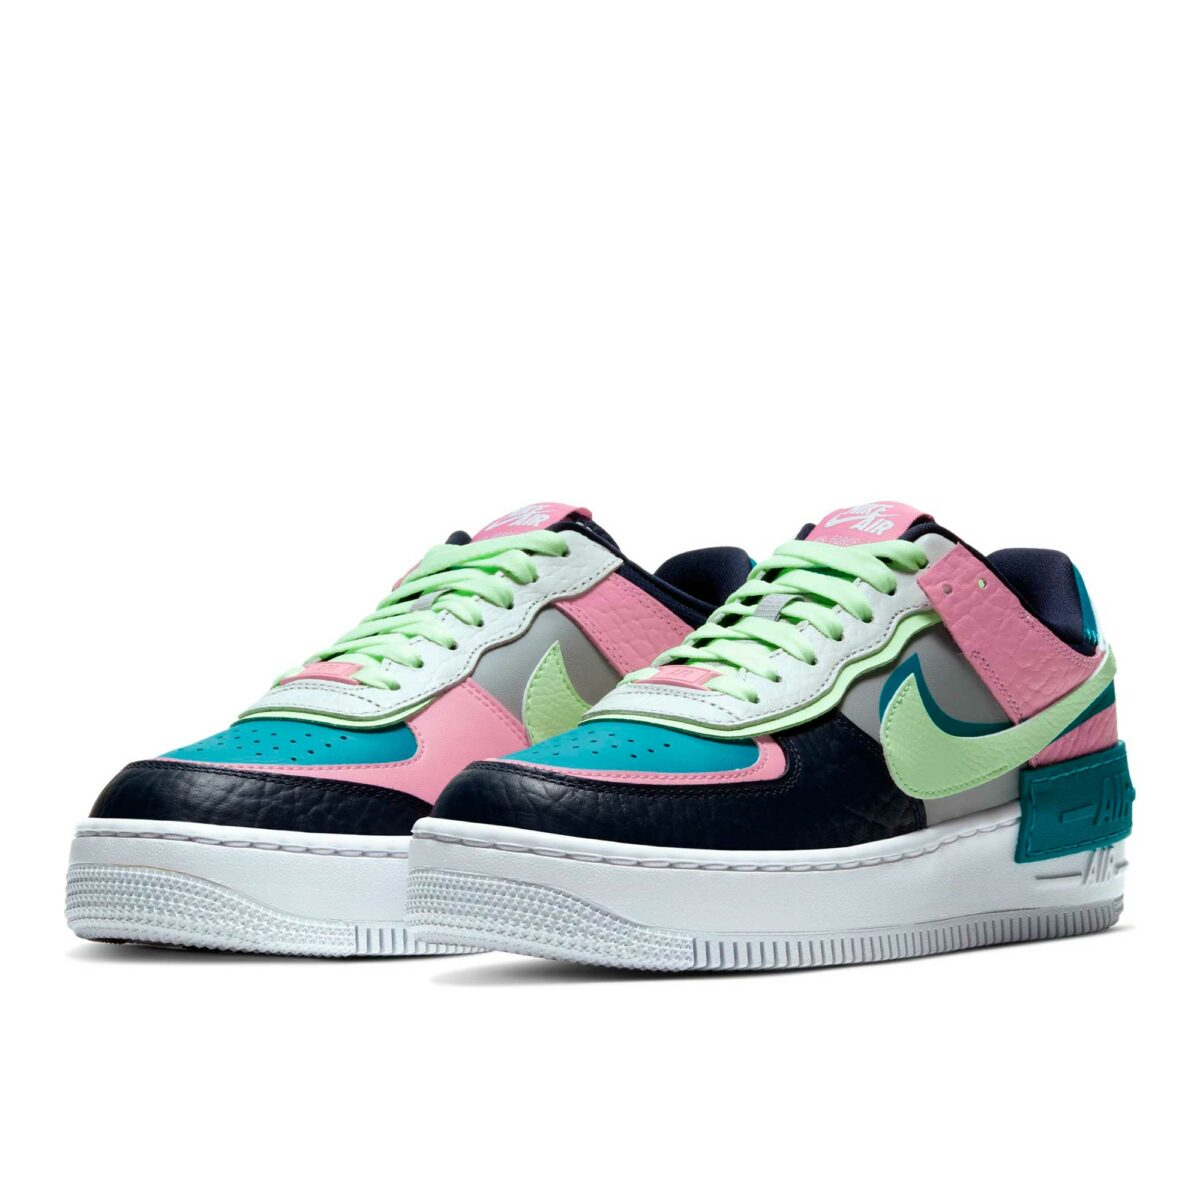 nike air force 1 shadow se pink aqua mint CK3172_001 купить